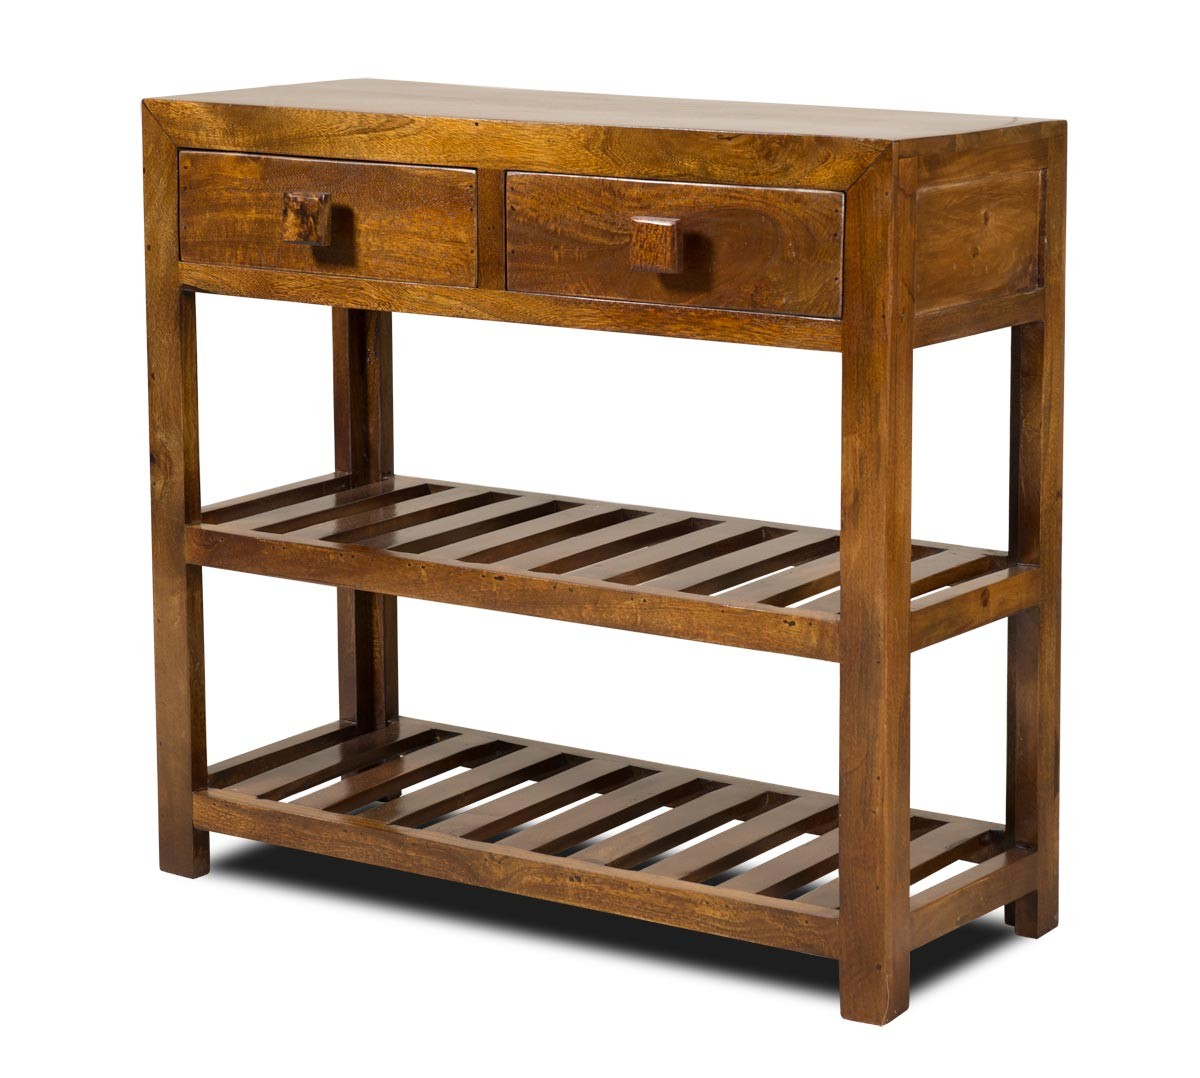 Small Narrow Console Table narrow console tables. image of narrow console table with drawers